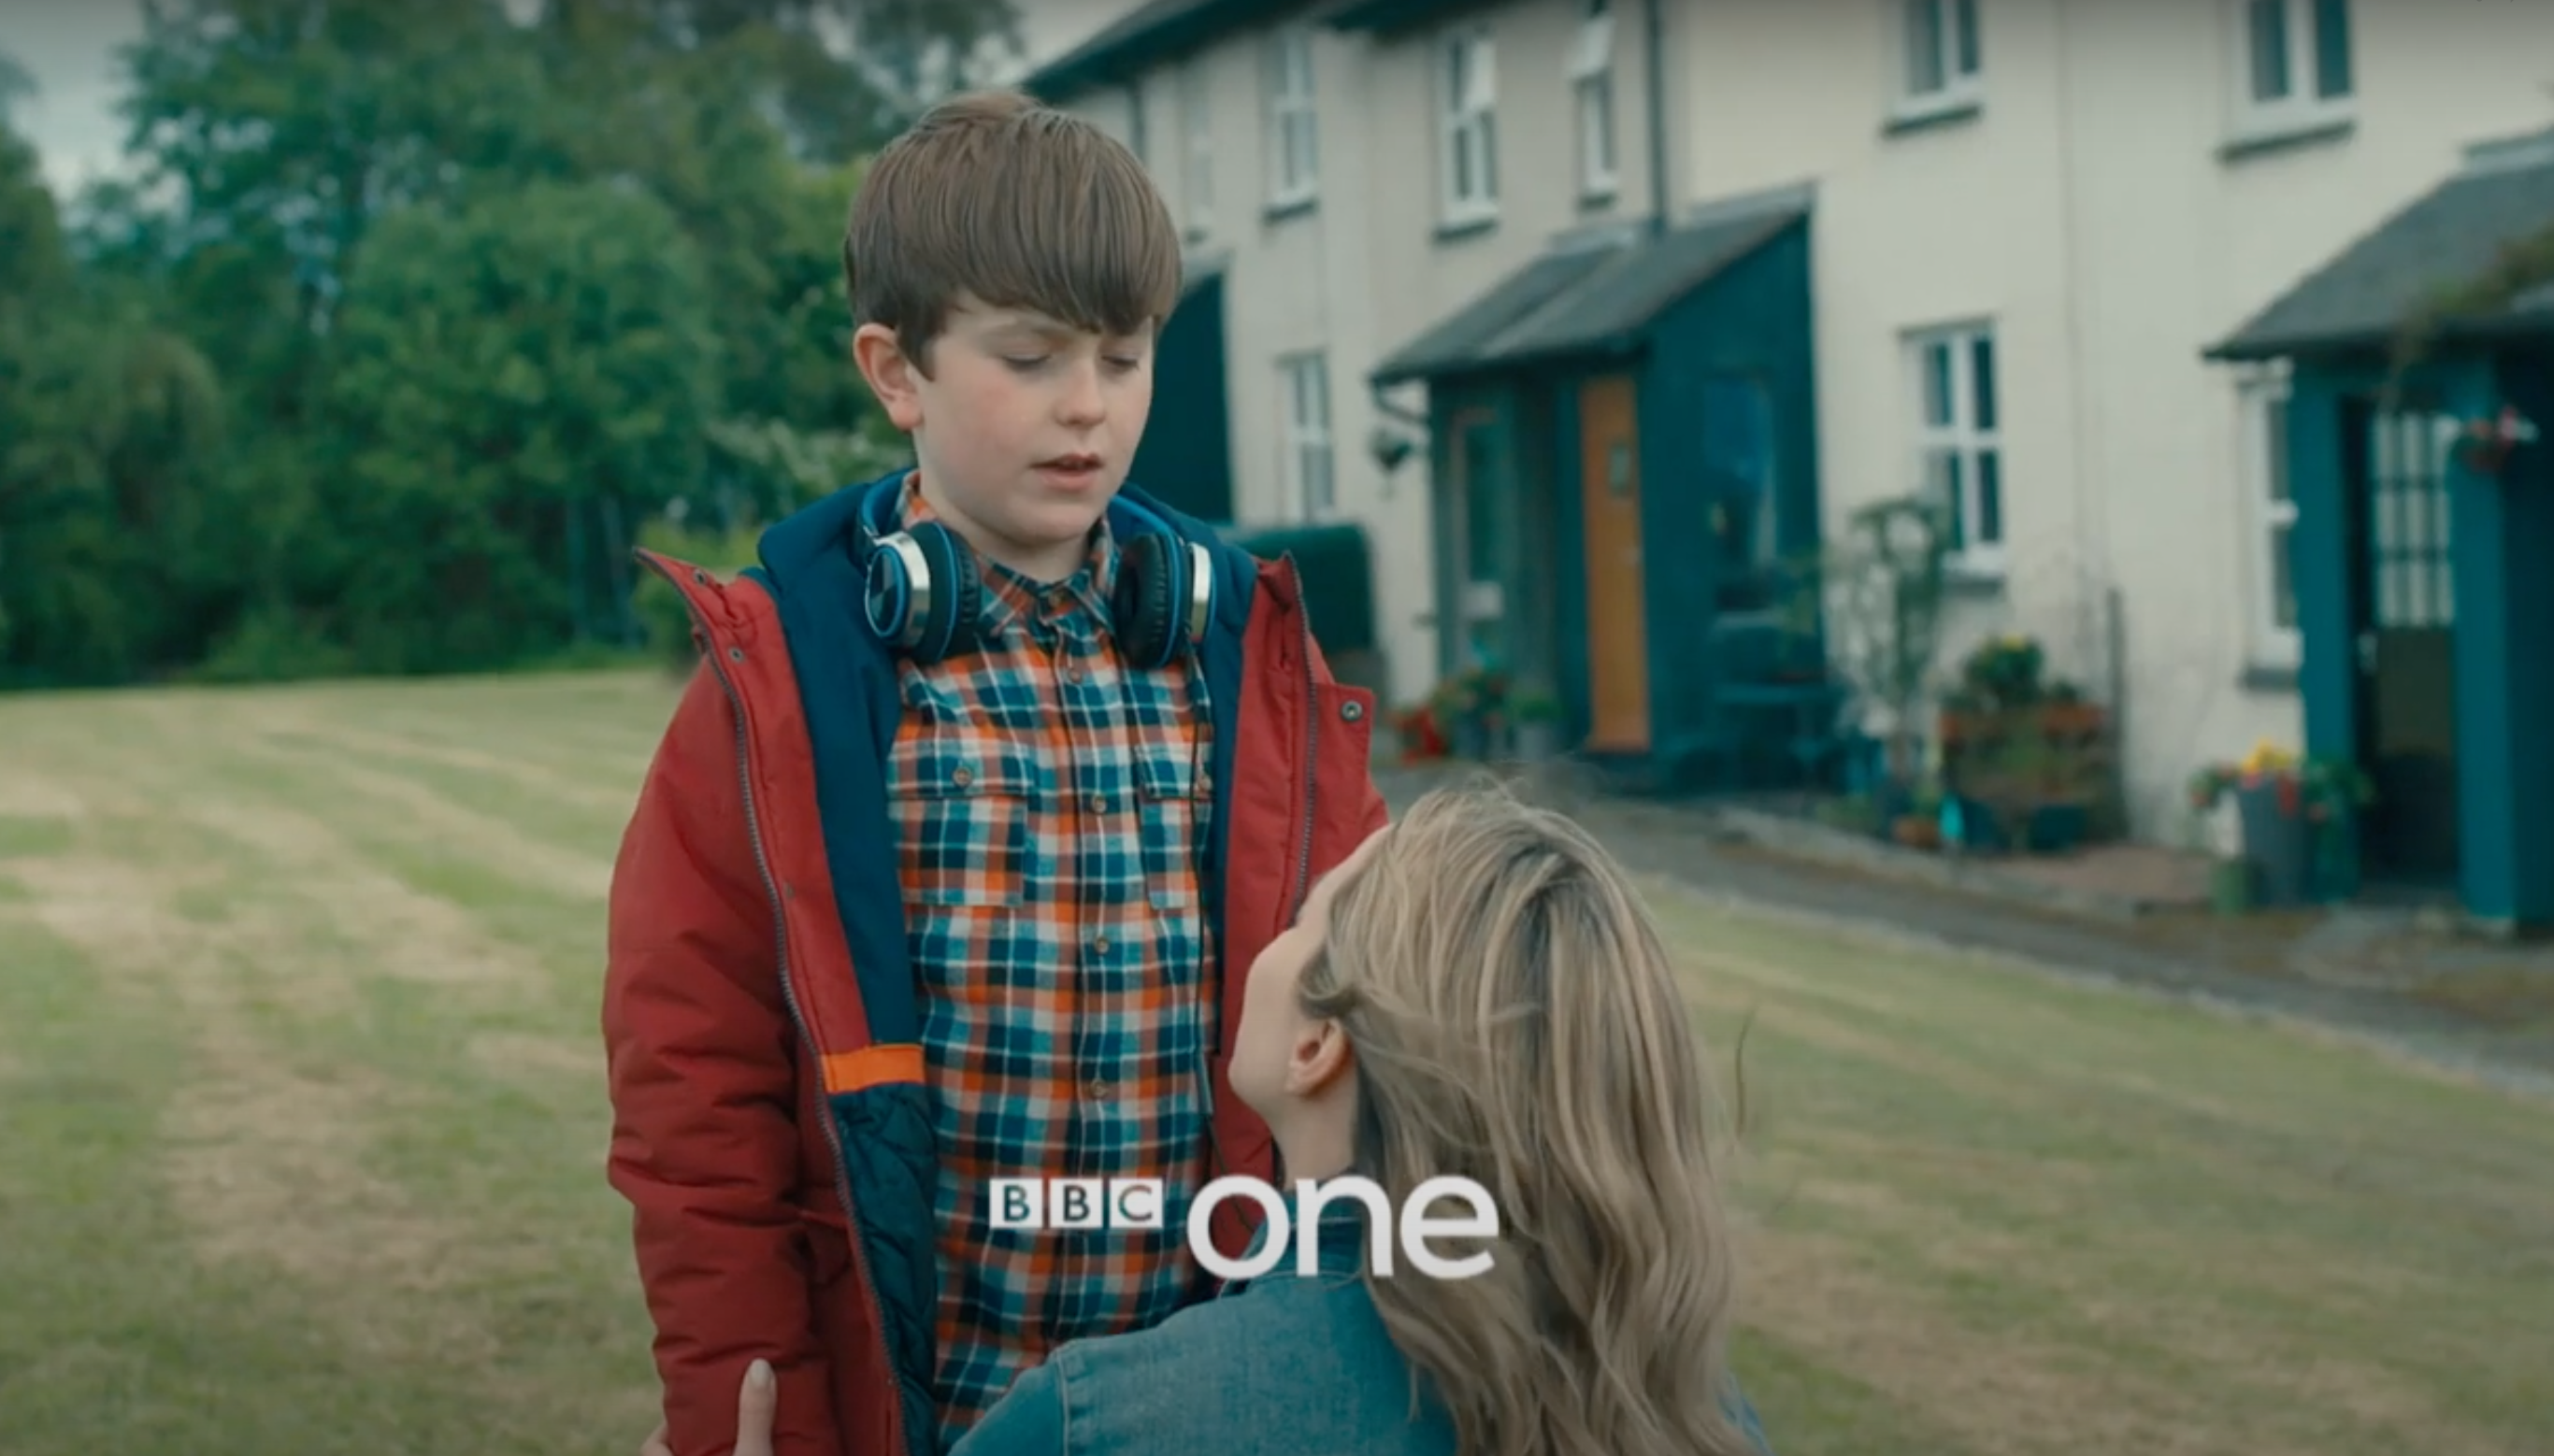 Does Max Vento have autism in real life? The A Word (Credit: BBC)